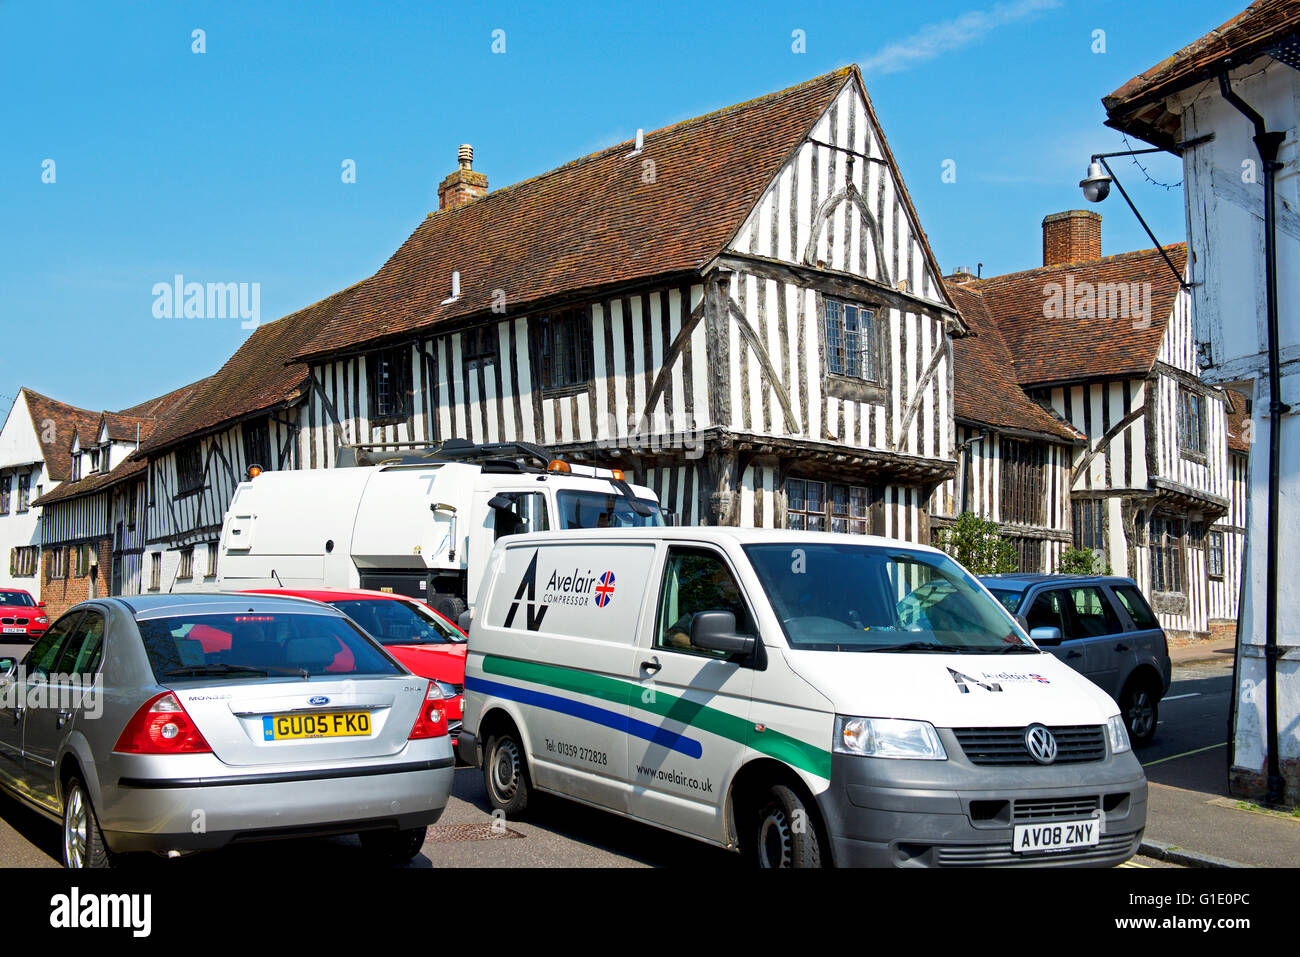 Traffic gridlock in the village of Lavenham, Suffolk, England UK - Stock Image